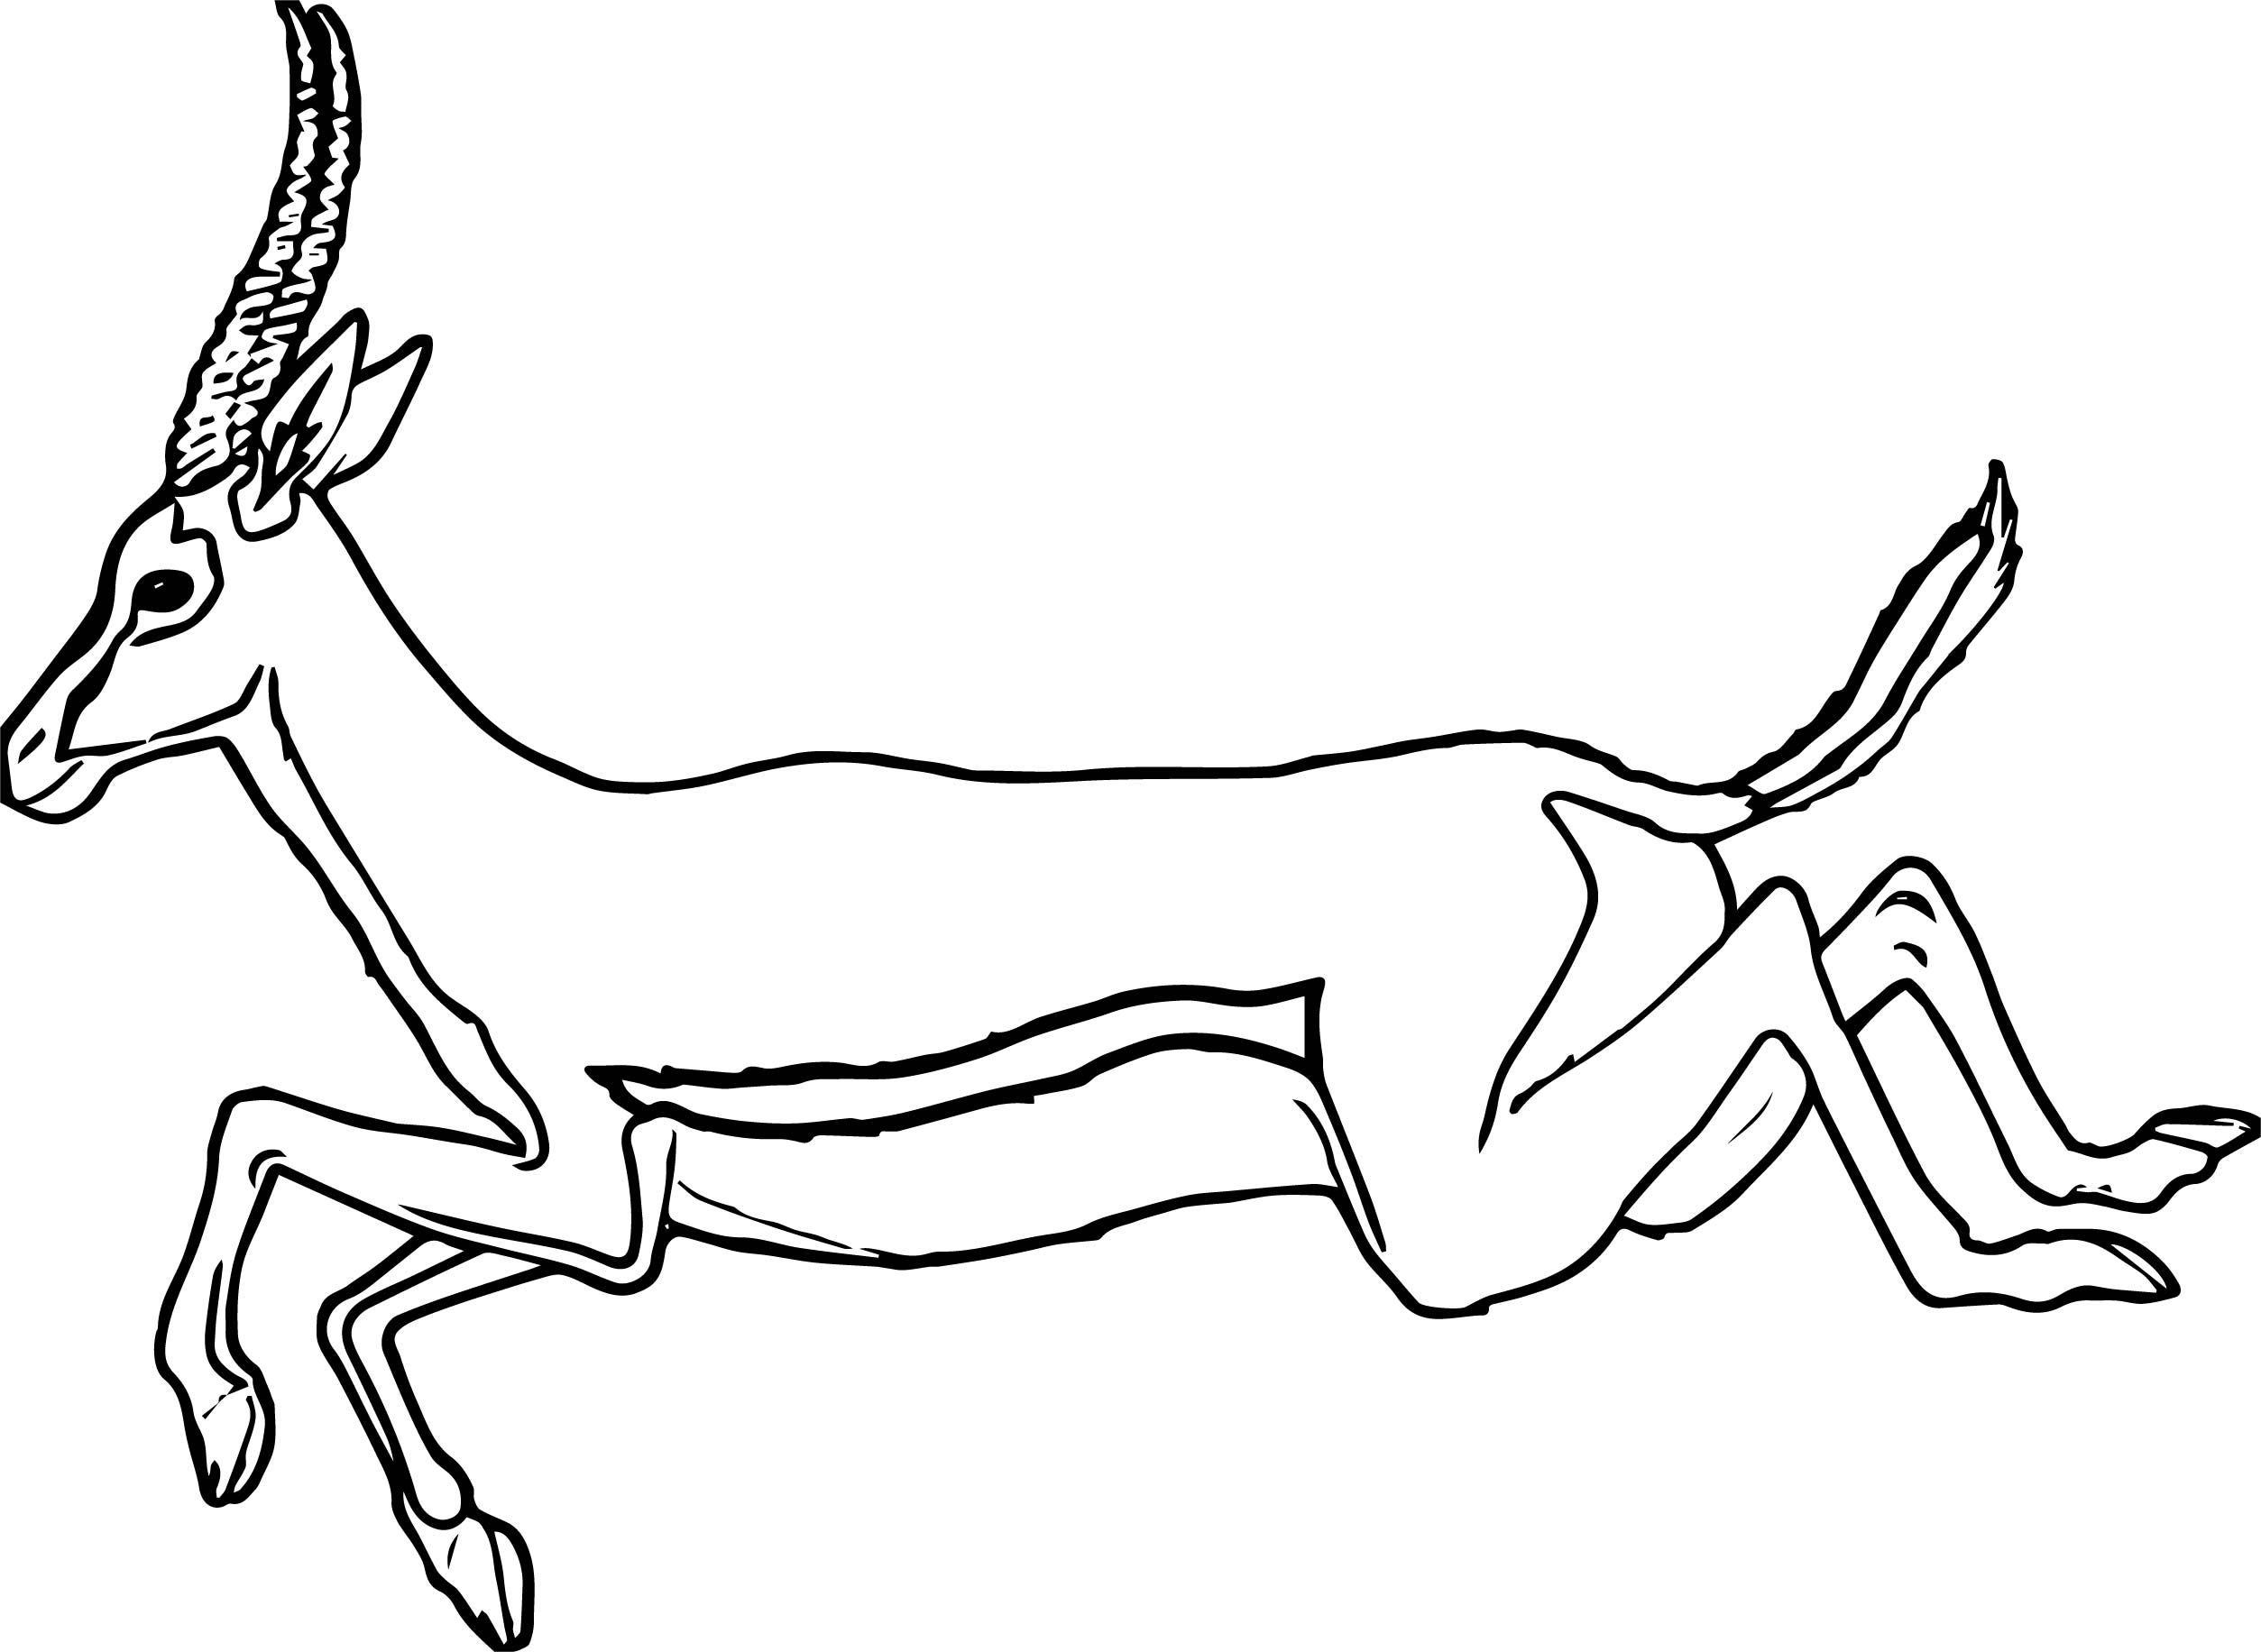 Awesome Leaping Antelope Coloring Page Coloring Pages Coloring